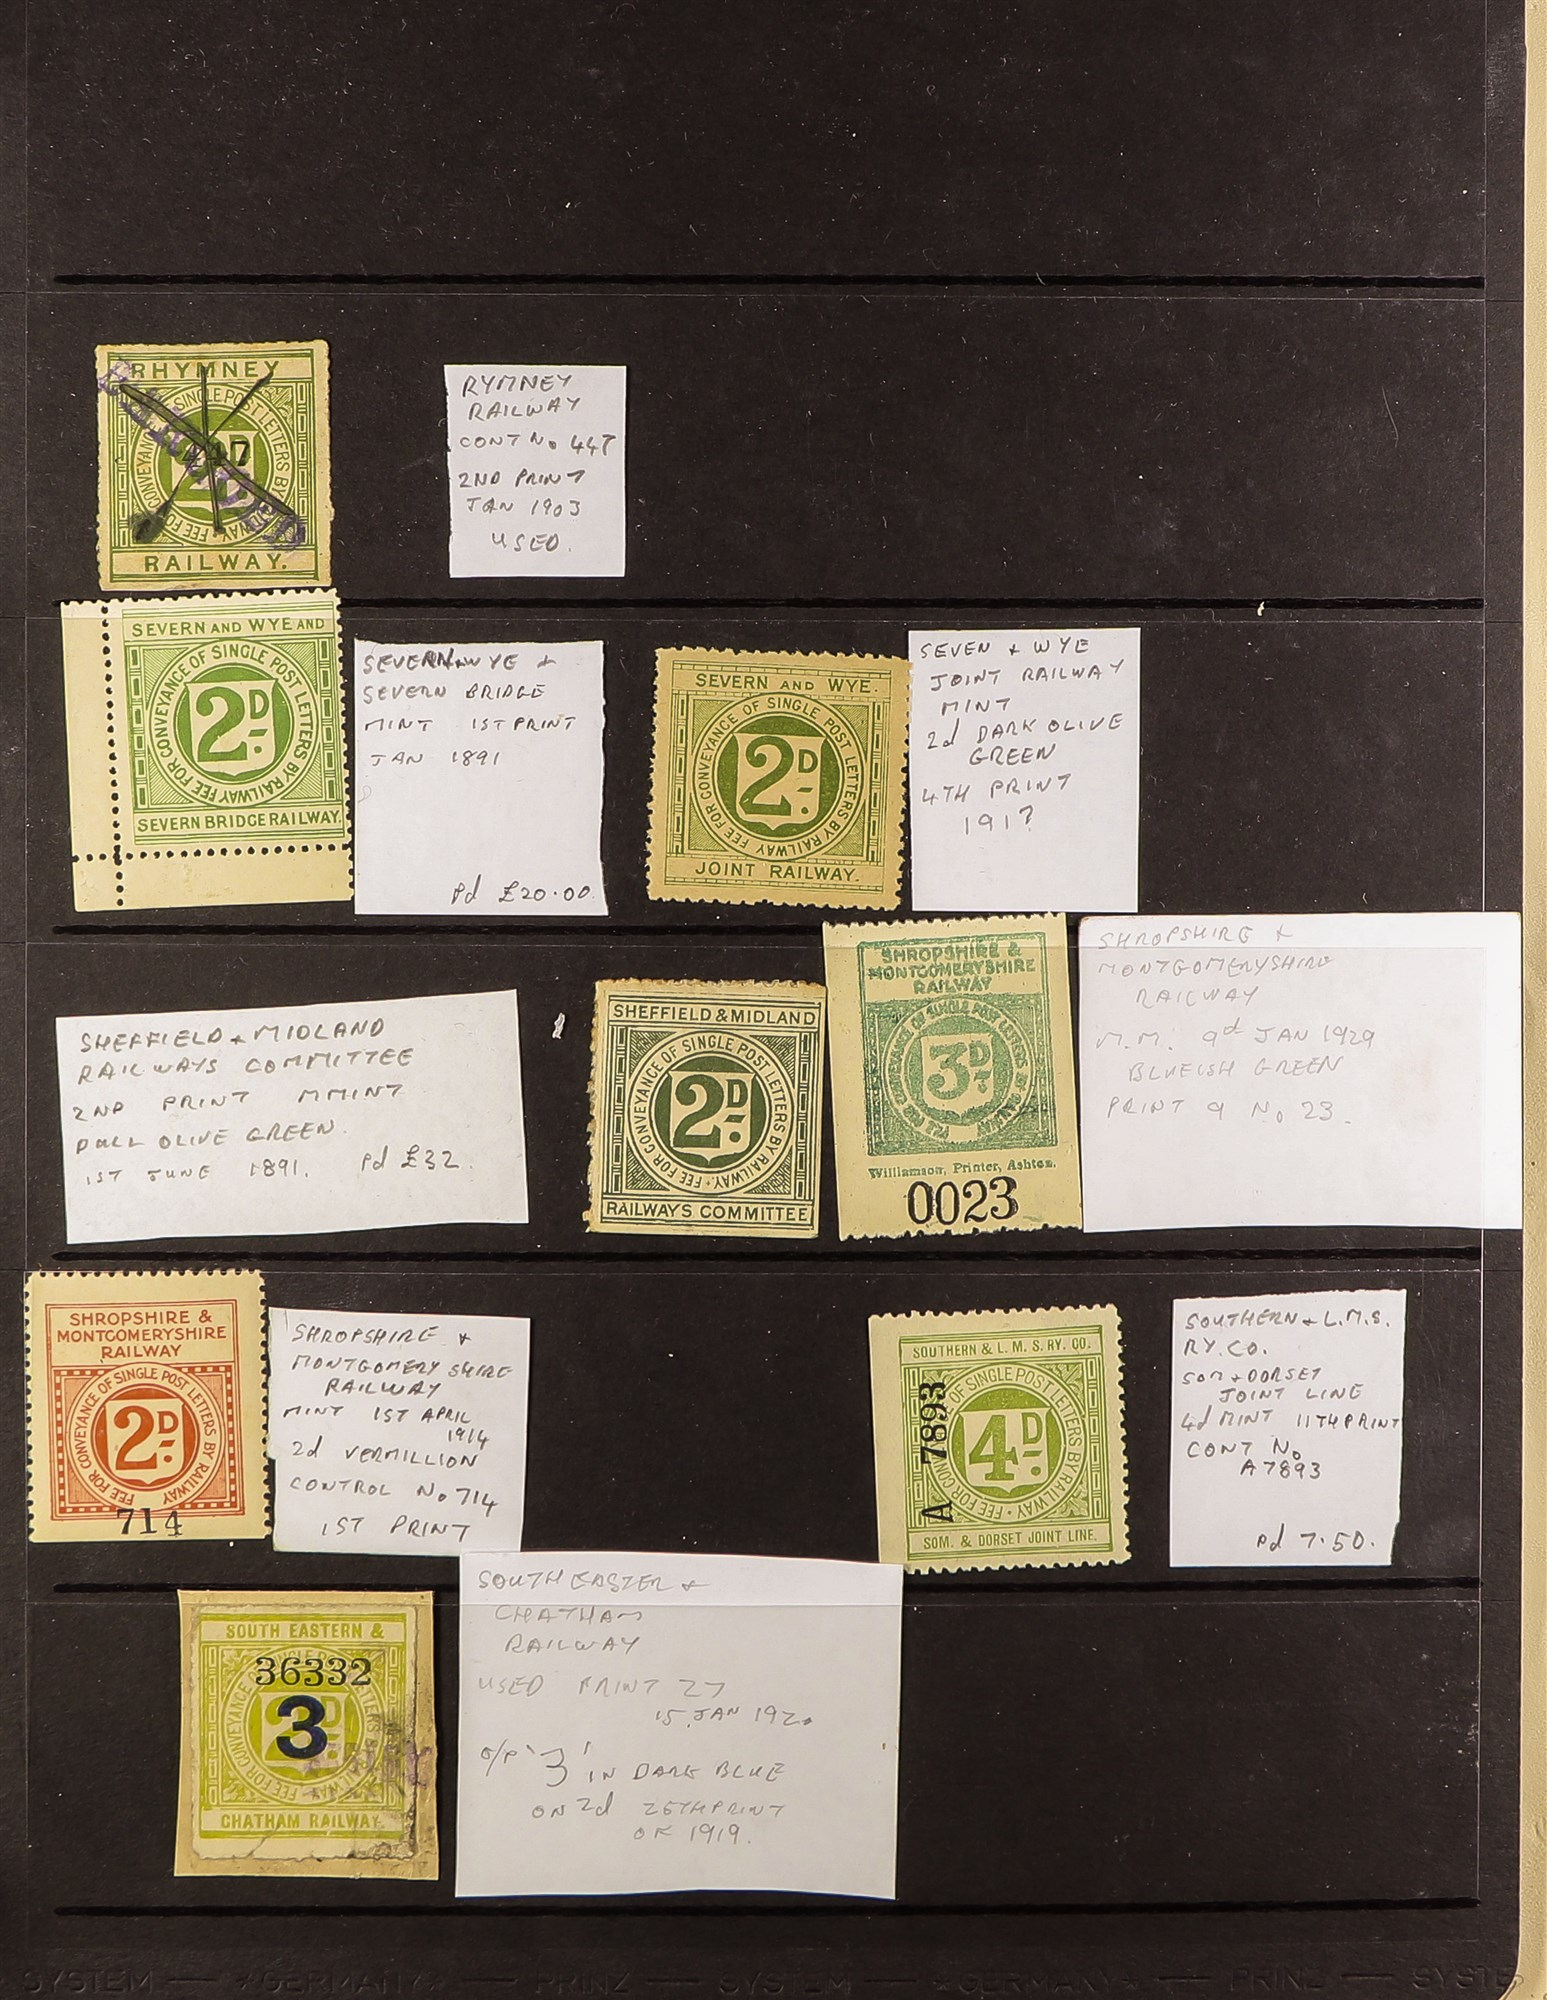 GREAT BRITAIN RAILWAY LETTER AND NEWSPAPER STAMPS 1890's-1940's COLLECTION in two albums, mint and - Image 12 of 24